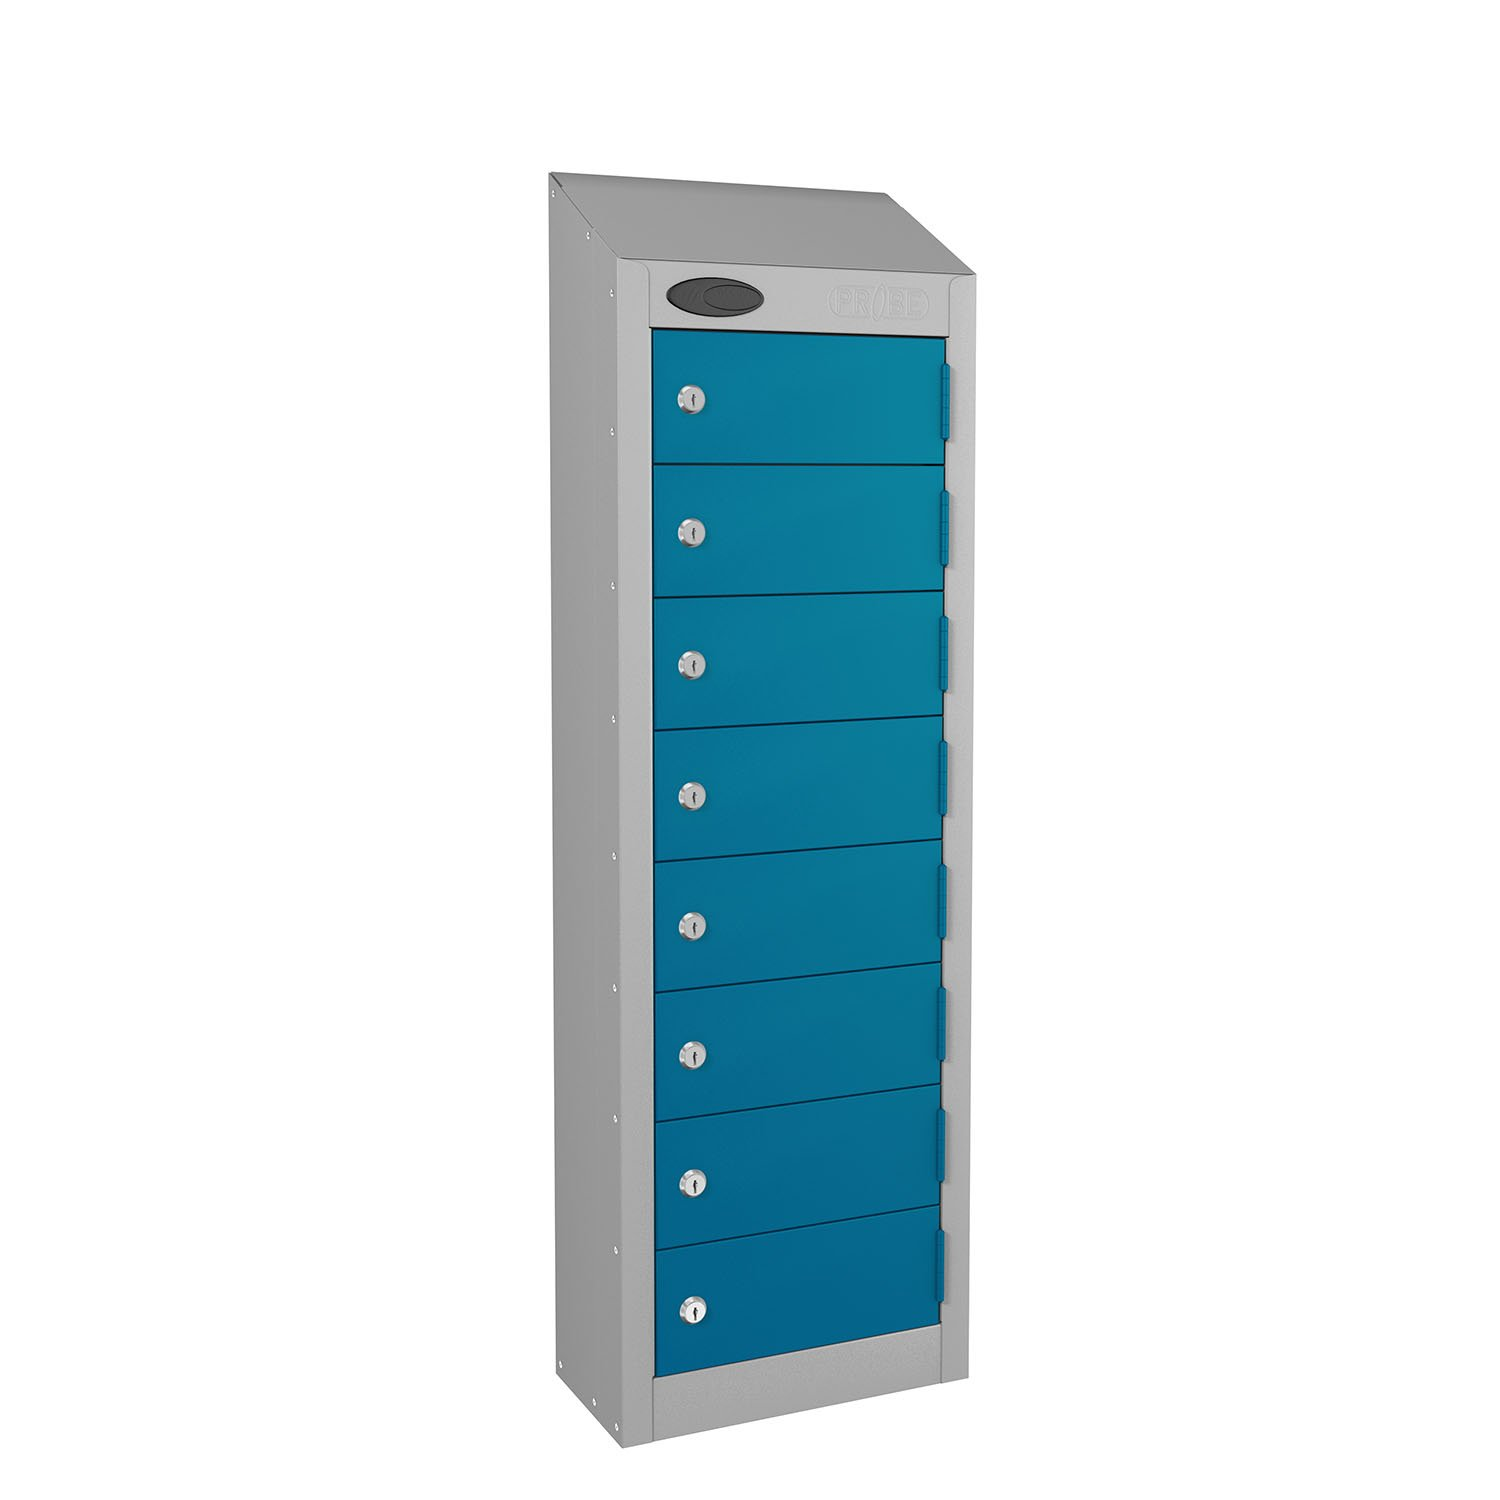 Probe 8 doors small compartment personal locker in blue colour